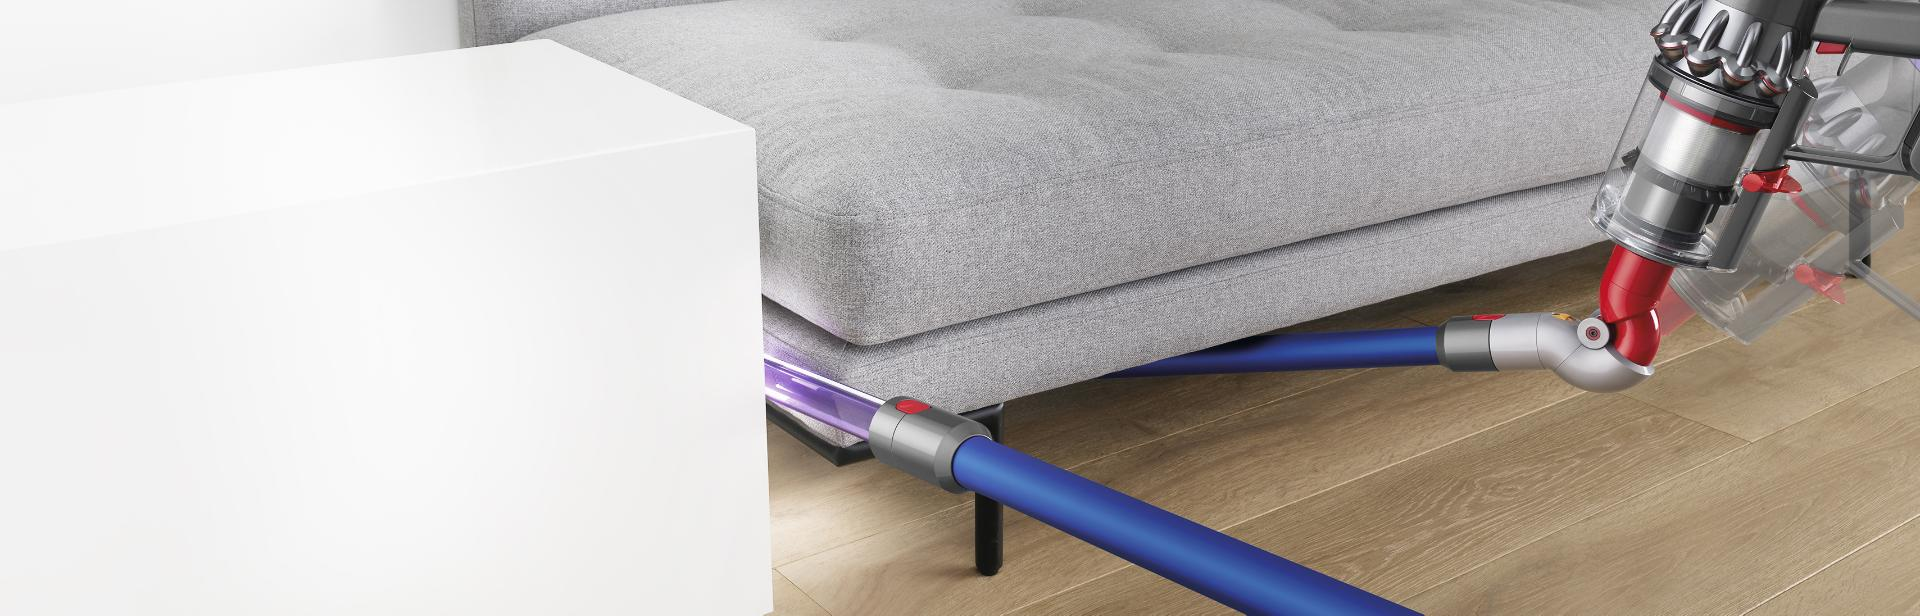 Dyson vacuum accessories cleaning a sofa